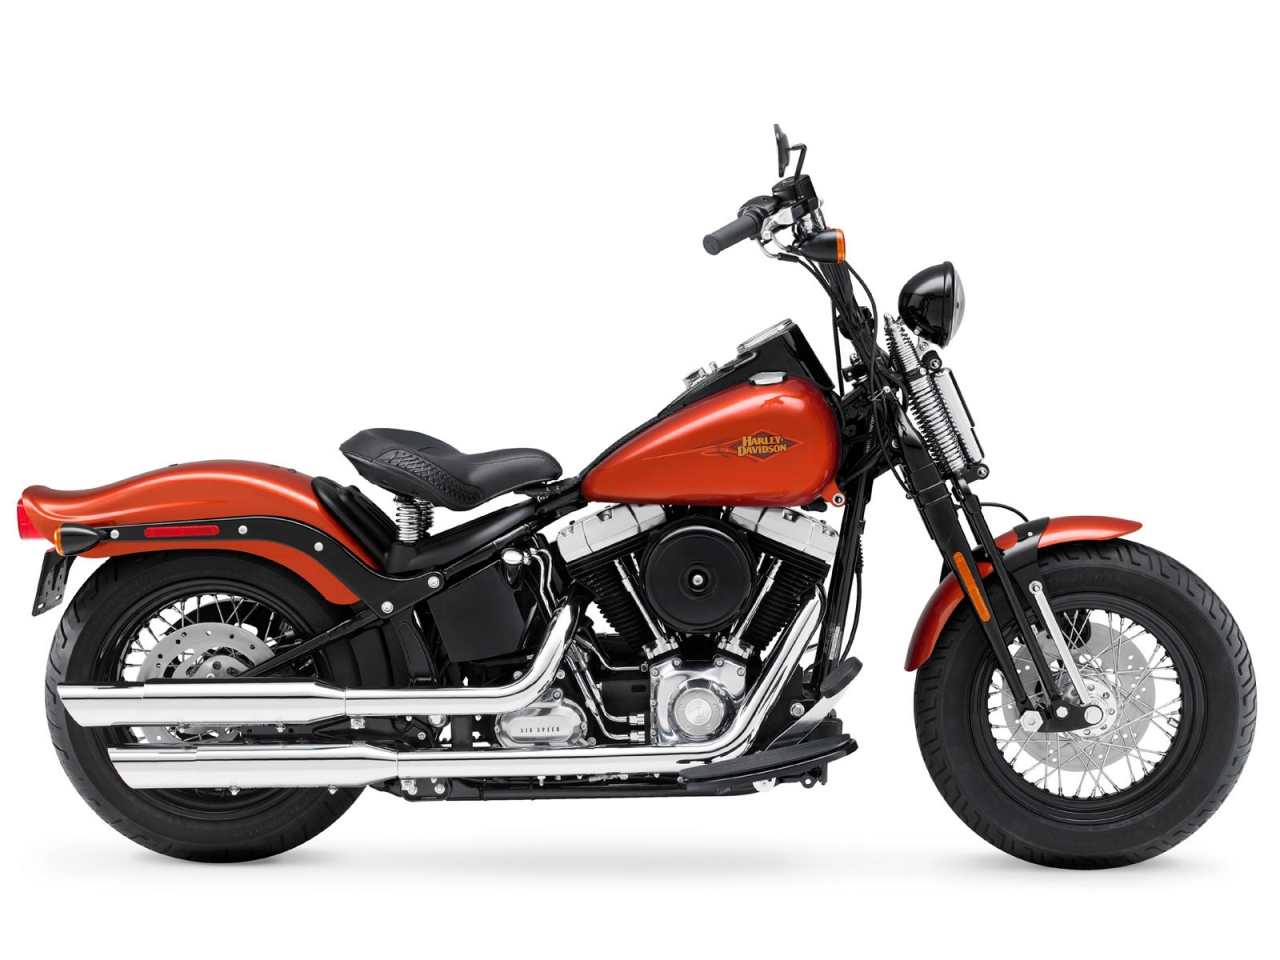 harley davidson motorcycles on price elasticity of demand Us demand for harley's bikes is falling retaliatory tariff on harley-davidson motorcycles in any market would have a significant impact on our sales so not only do they see unit demand shrinking they have other price-mix factors impacting the business, said katz.